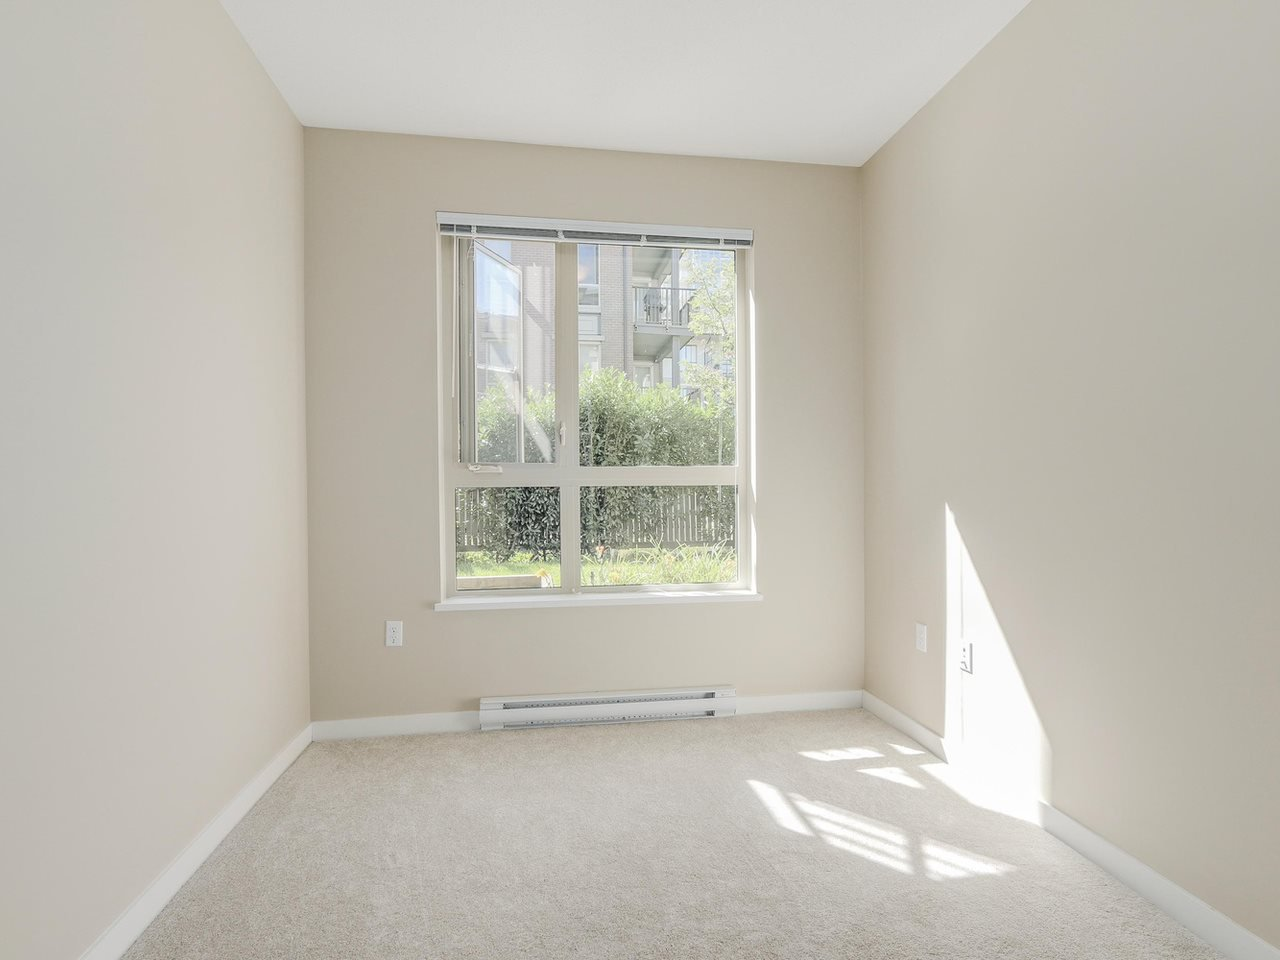 """Photo 7: Photos: 108 1150 KENSAL Place in Coquitlam: New Horizons Condo for sale in """"Windsor Gate"""" : MLS®# R2102595"""